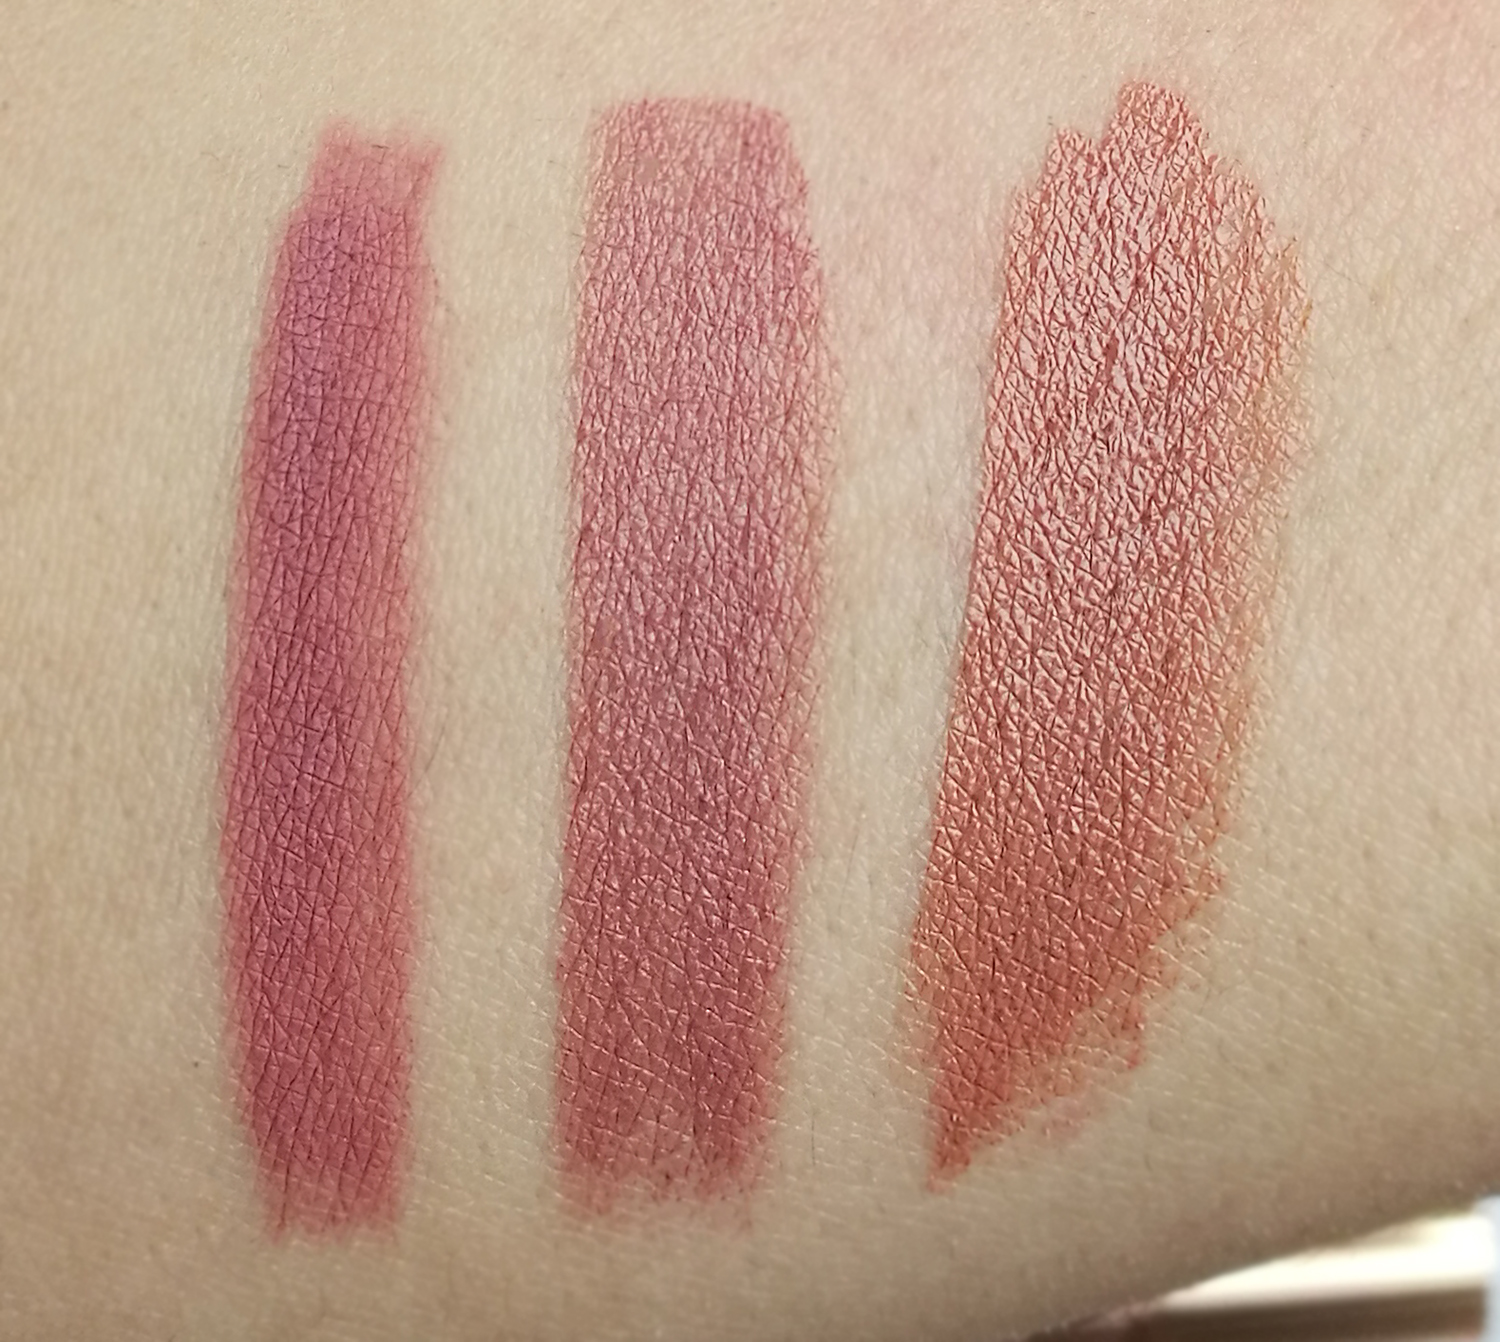 swatches to shades: pilowtalk, very victoria and hepburn honey